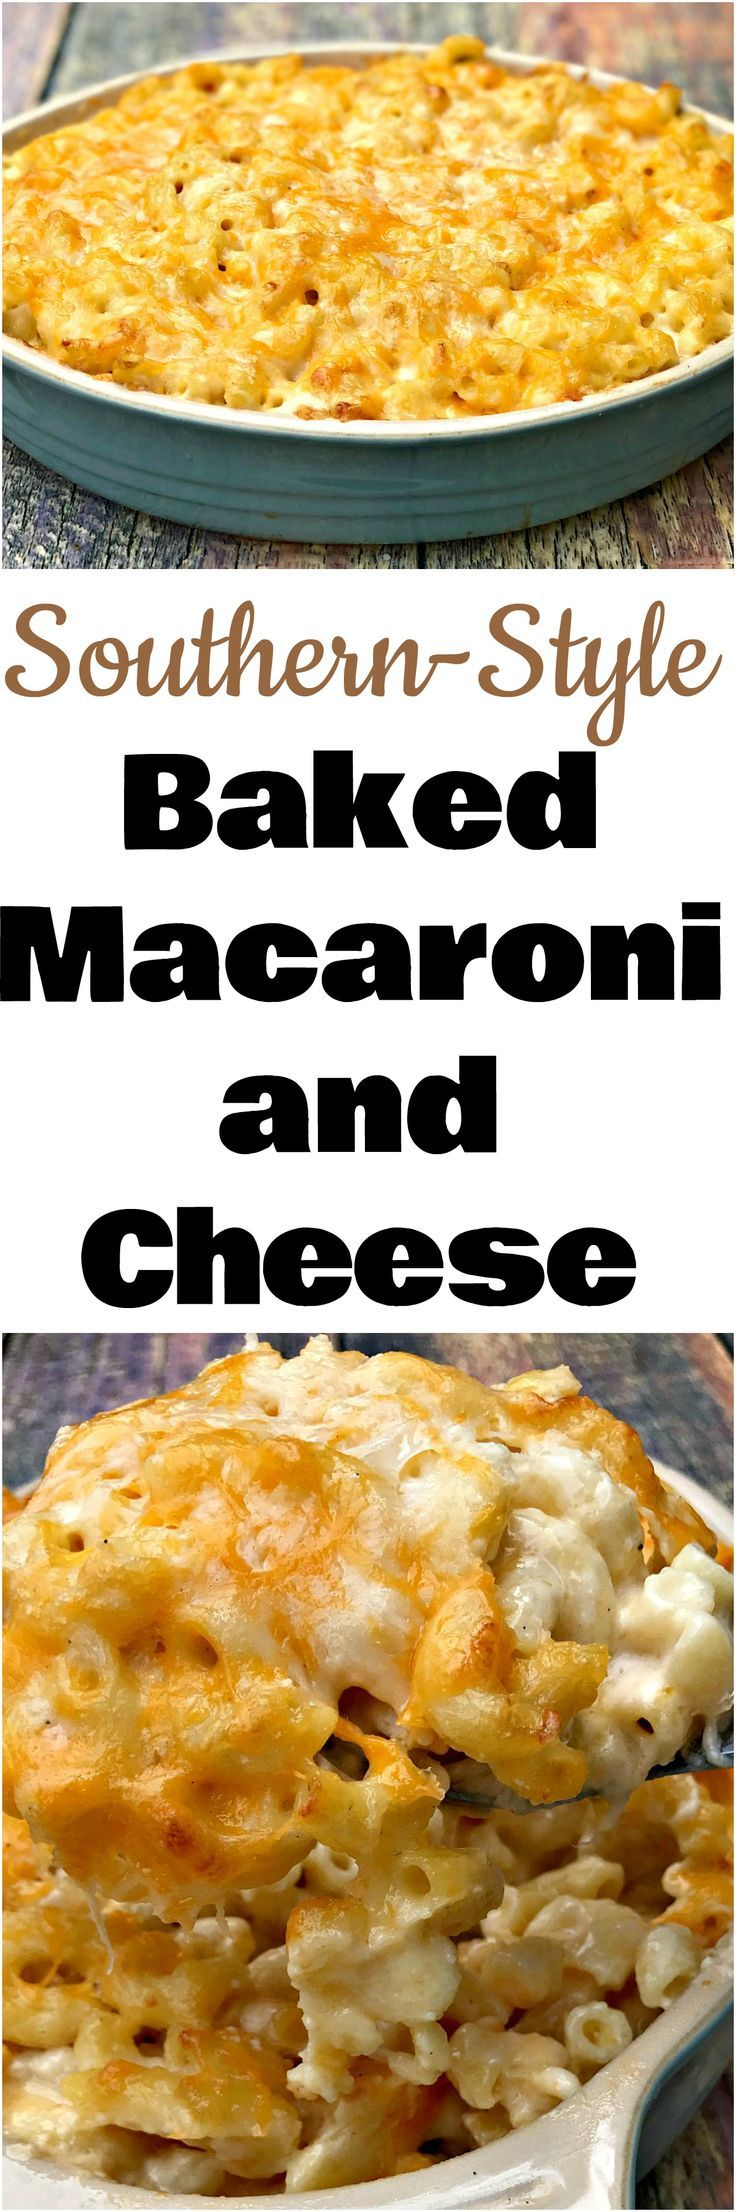 Southern-Style Baked Macaroni and Cheese